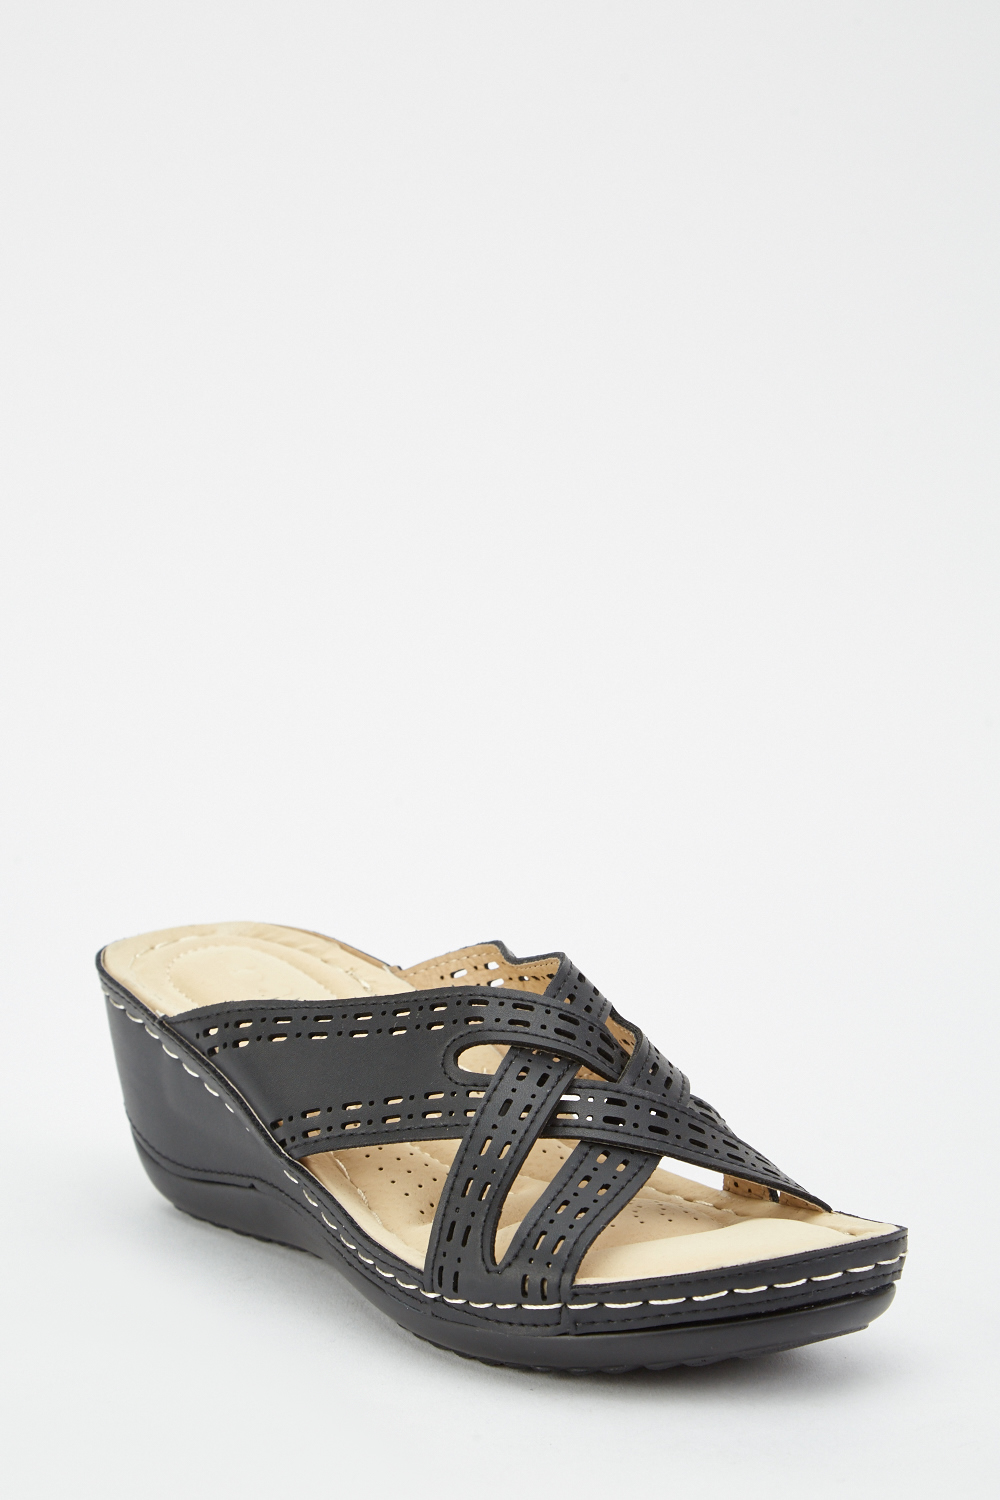 Cross Strap Wedge Sandals Just 163 5